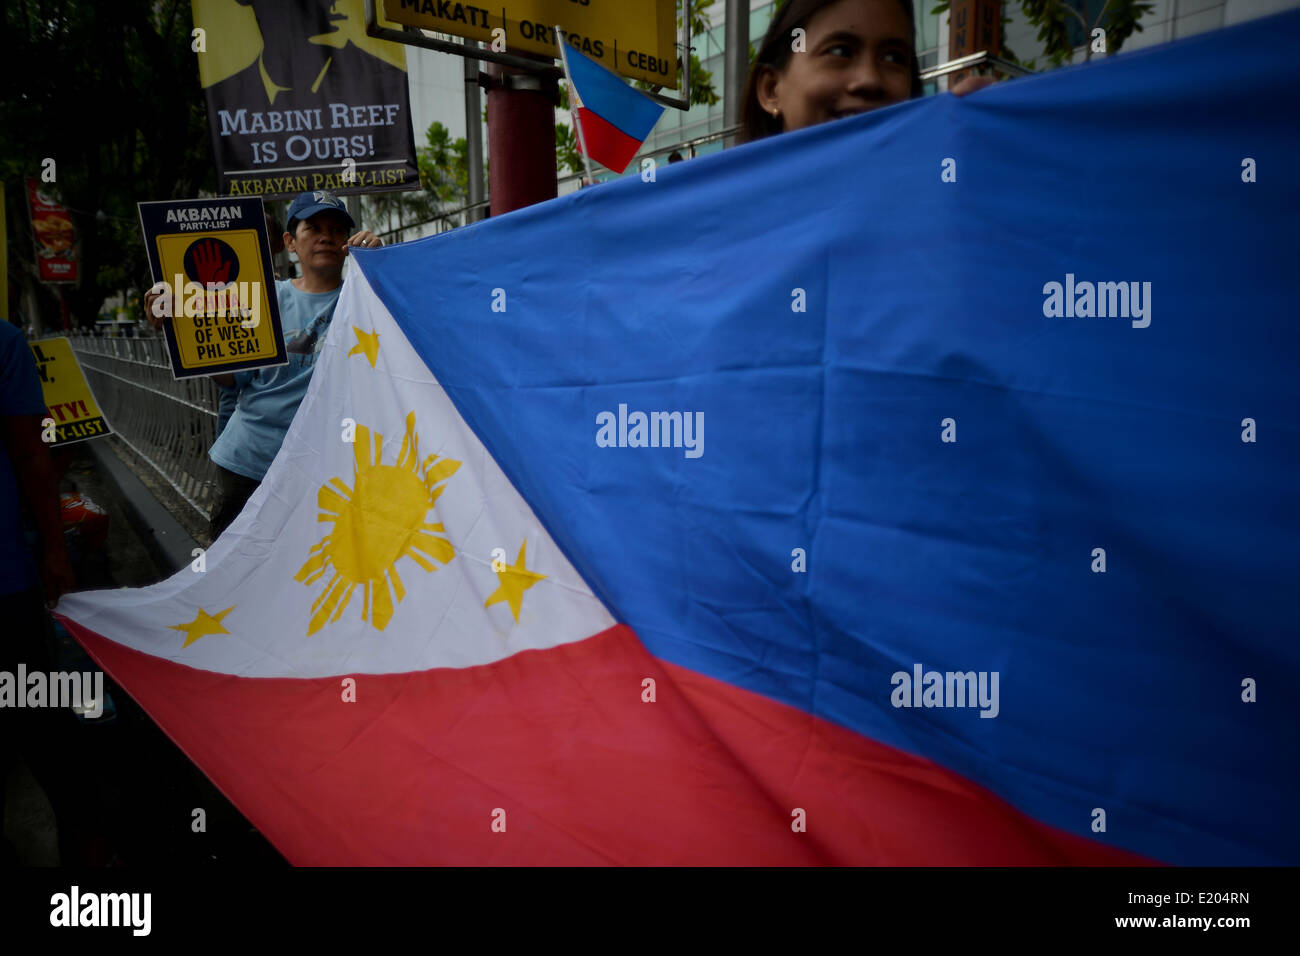 Makati, Philippines. 12th June, 2014. Demonstrators hold up the Philippine national flag during a protest outside - Stock Image